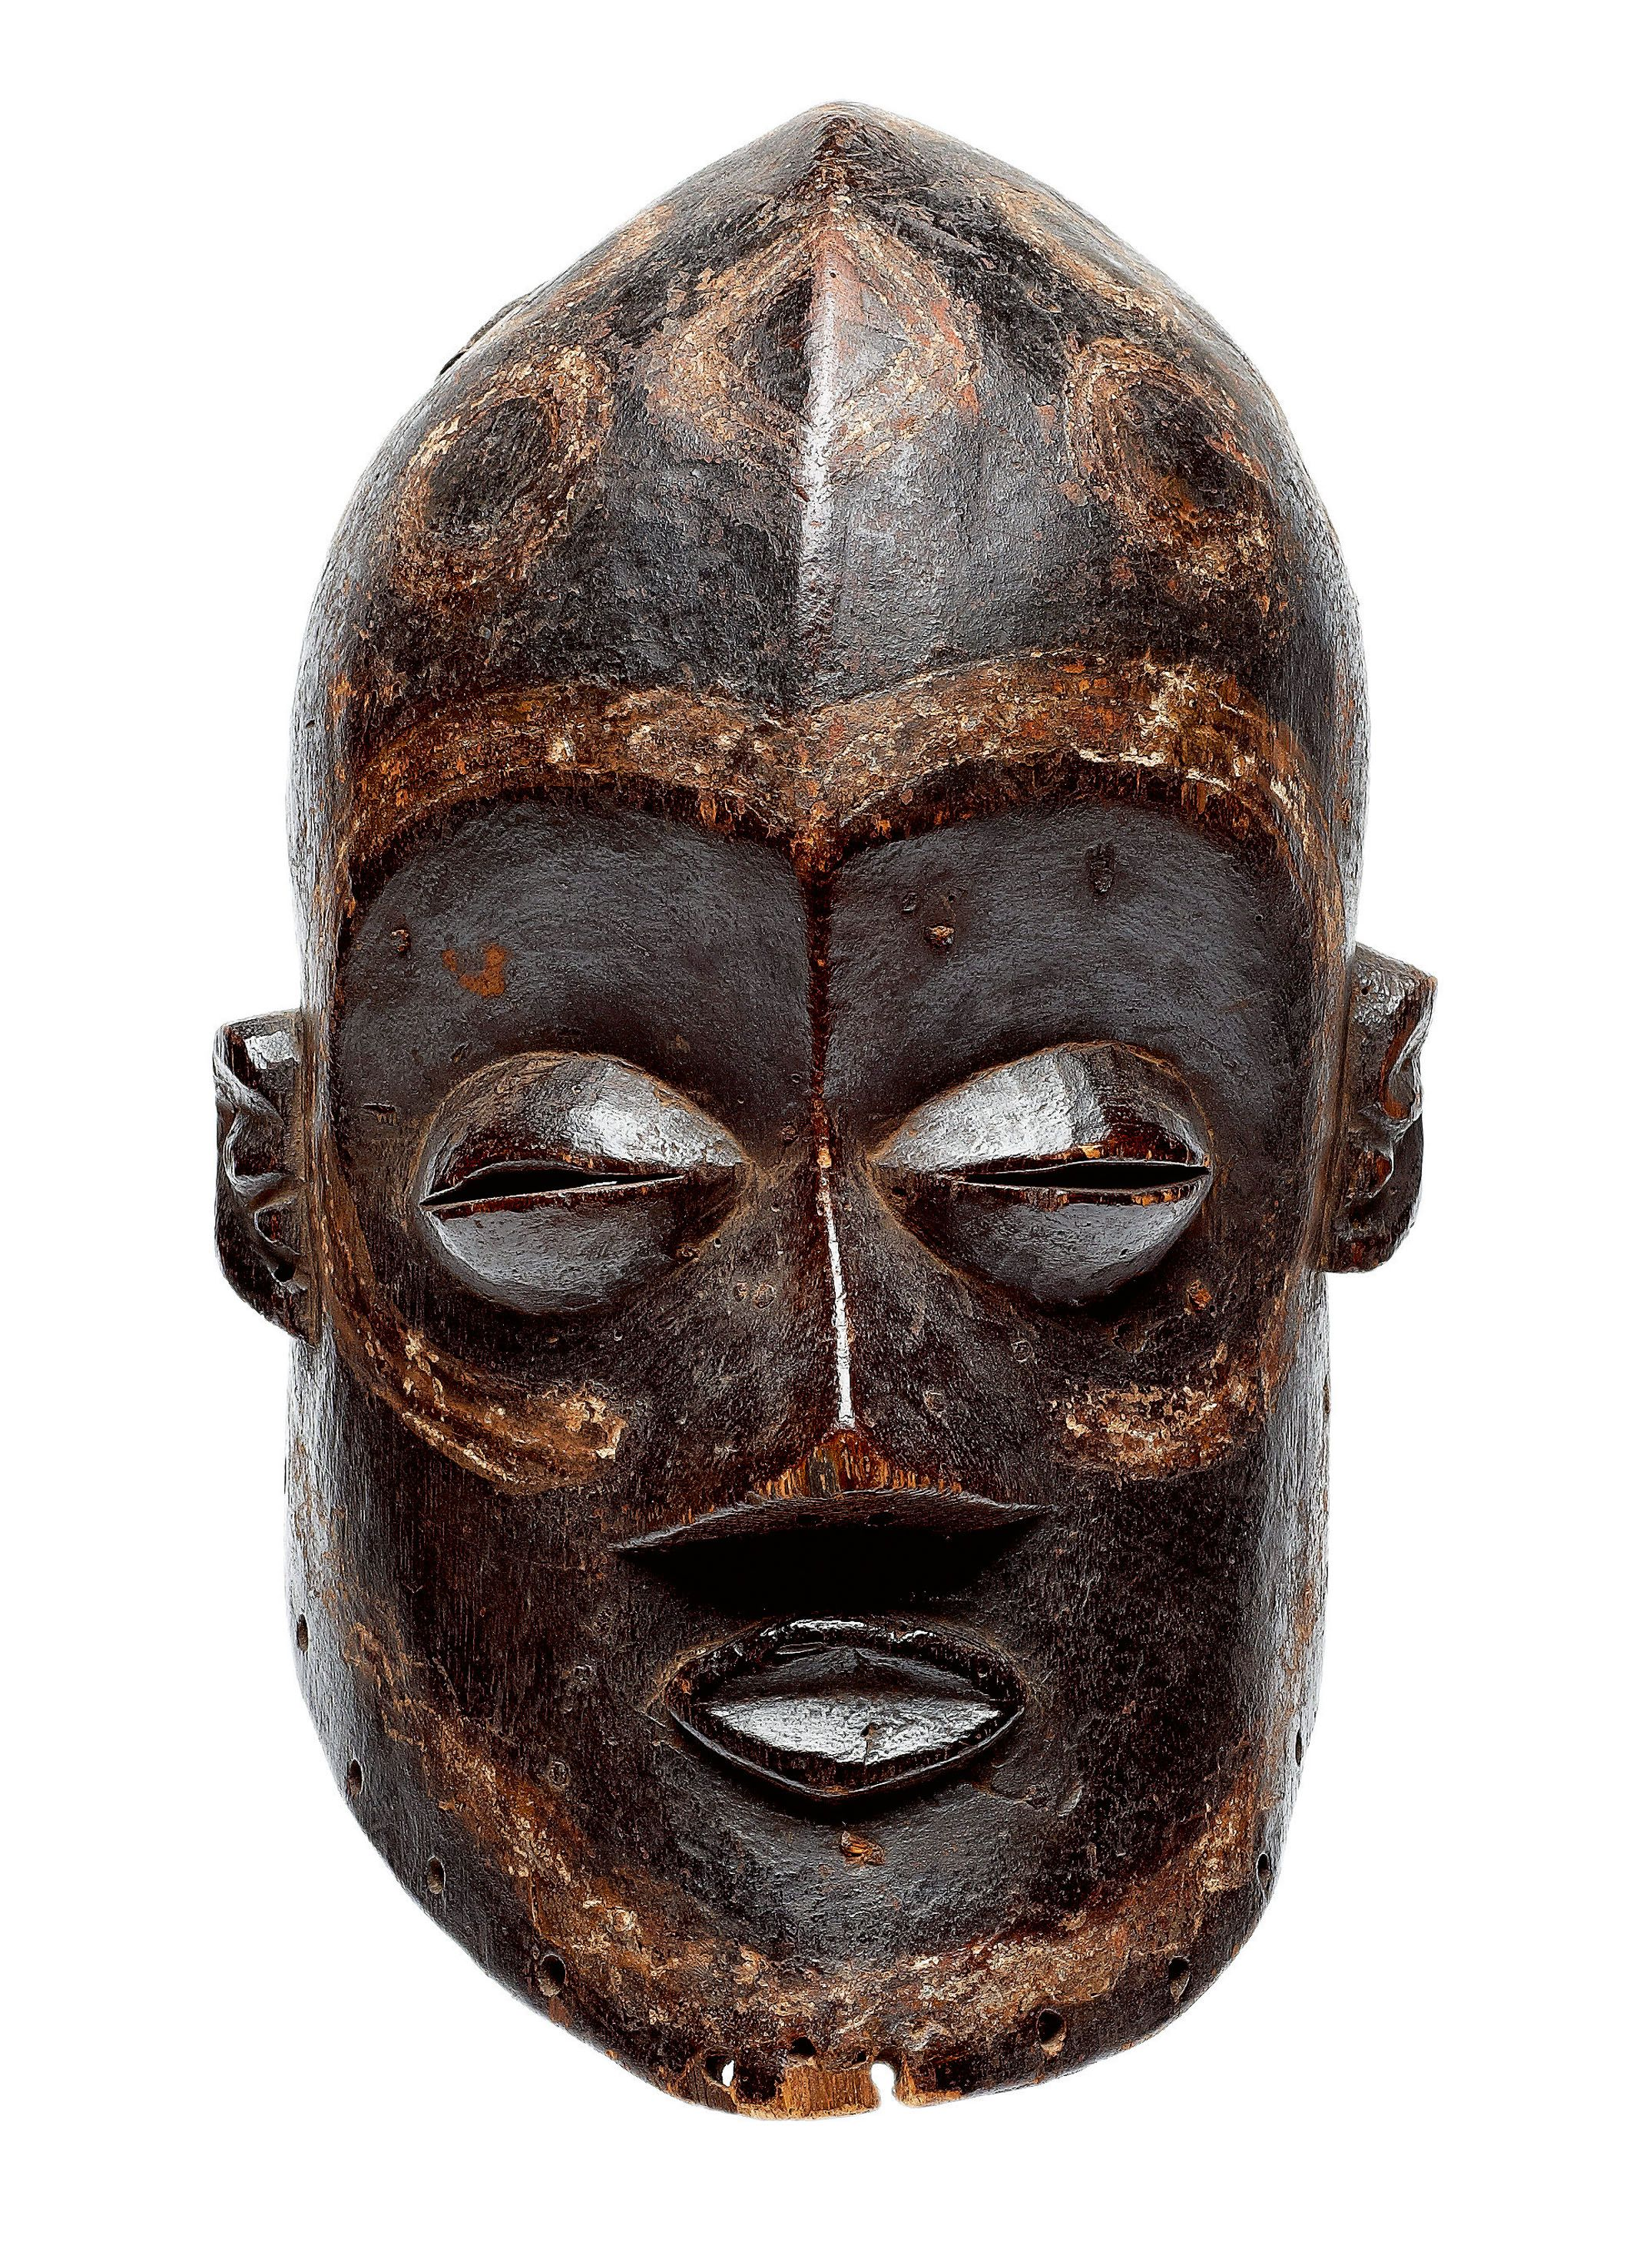 Africa | A rare Luluwa mask, DR Congo | Mostly know for their prolific statuary, the Bena Luluwa produced rare masks of great quality. They represent the spirits of ancestors and are used during circumcision rites.